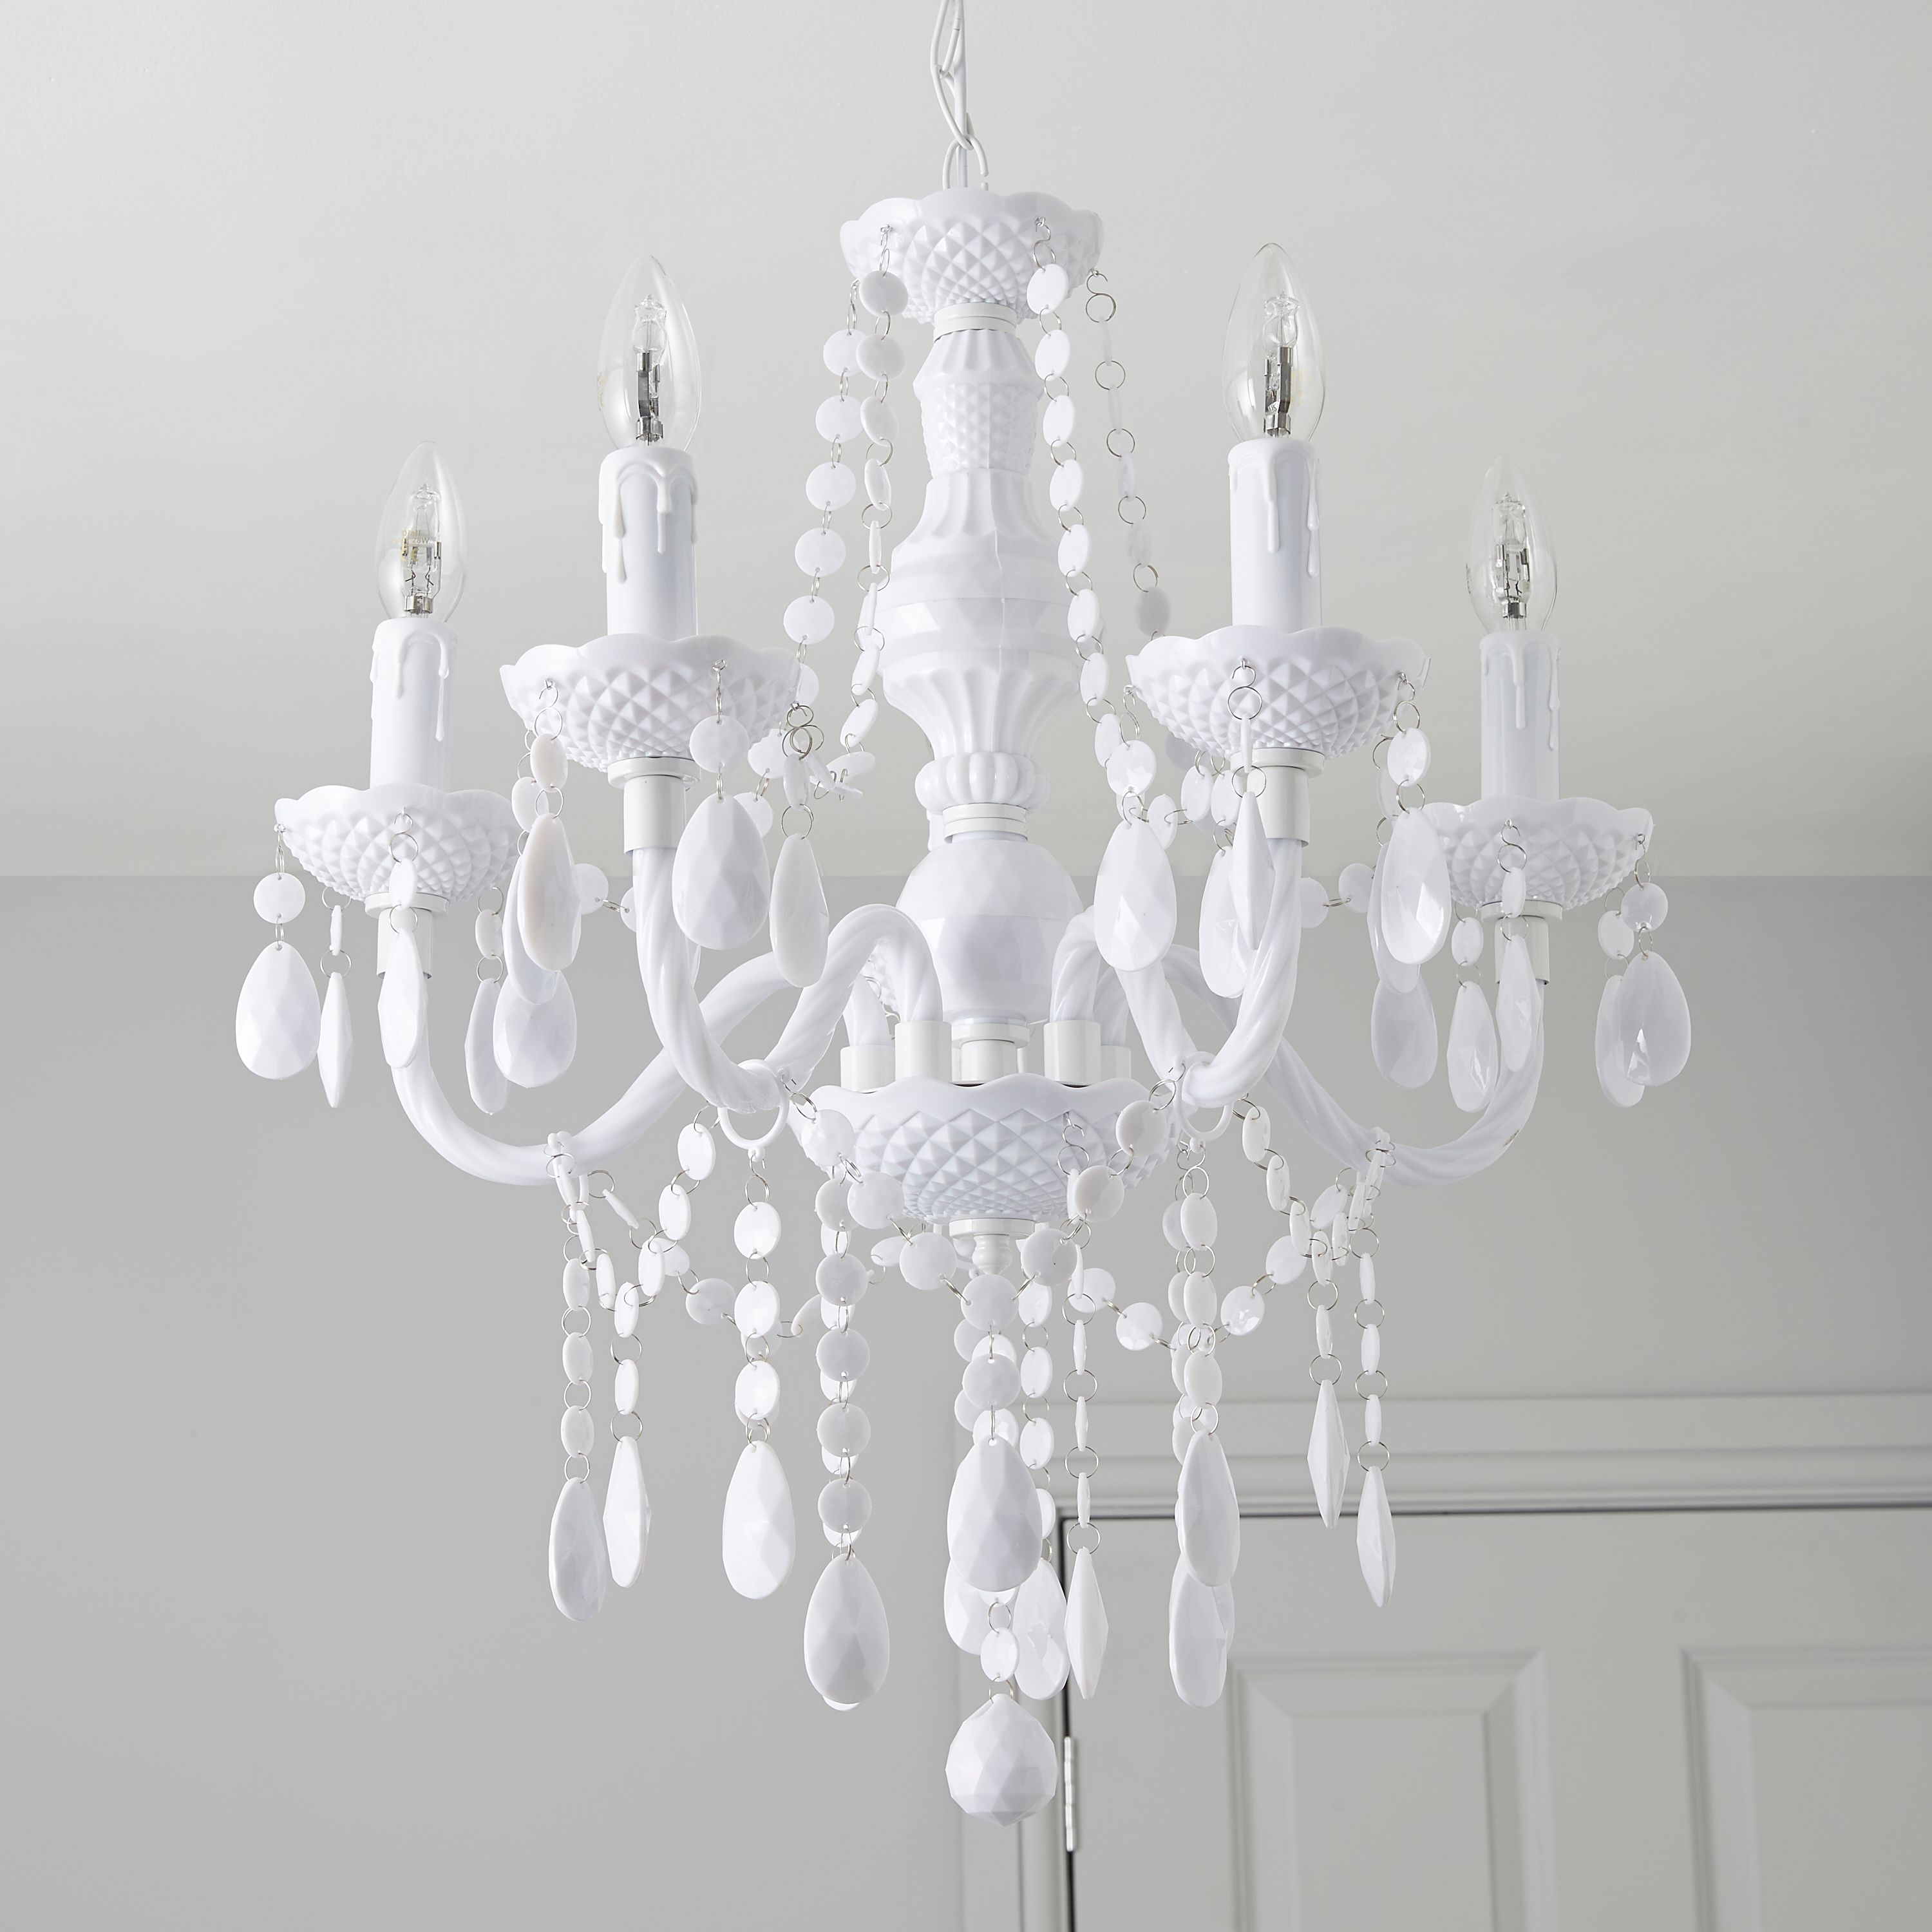 Wickham White 5 Lamp Pendant Ceiling Light Intended For White Chandeliers (#12 of 12)